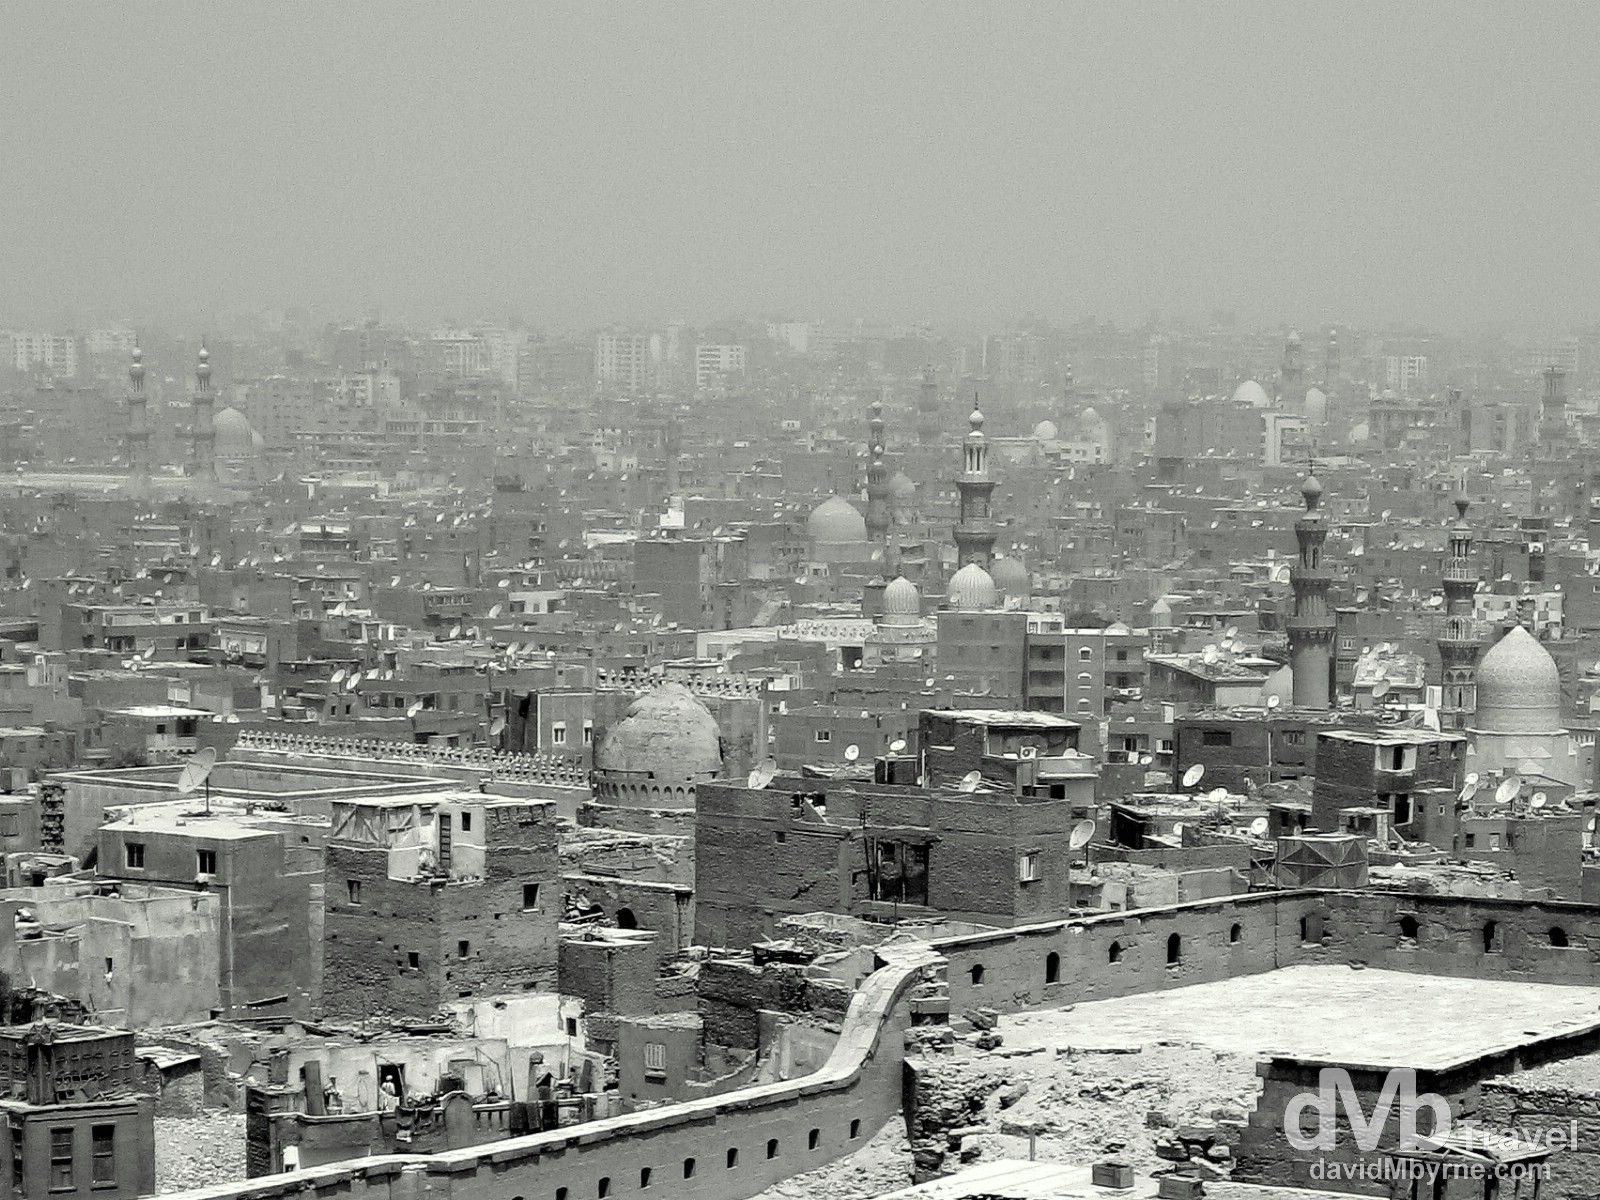 Cairo, Egypt, as seen from the Saladin Citadel. April 14, 2008.